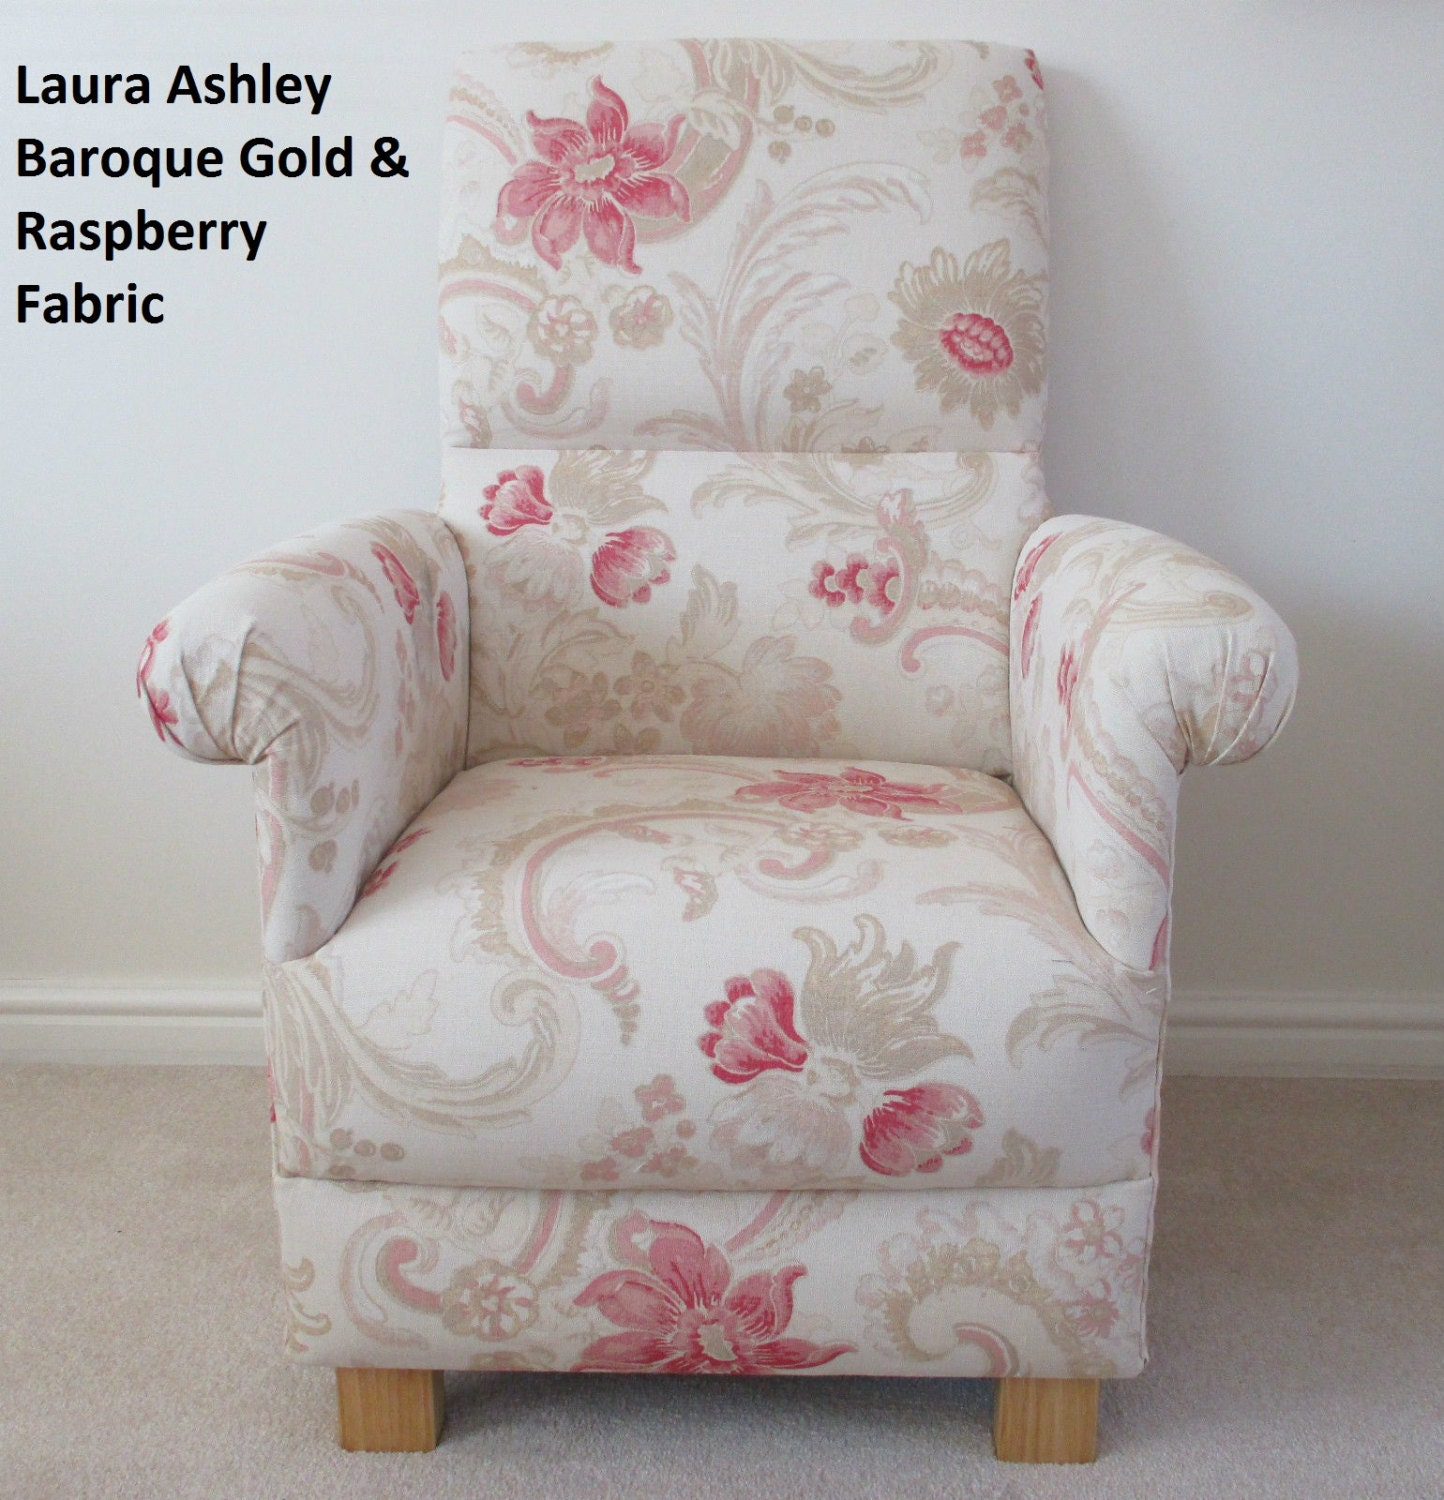 Laura Ashley Baroque Raspberry Fabric Adult Chair Gold Cream Bedroom Red Beige Nursery Lounge Bespoke Handcrafted